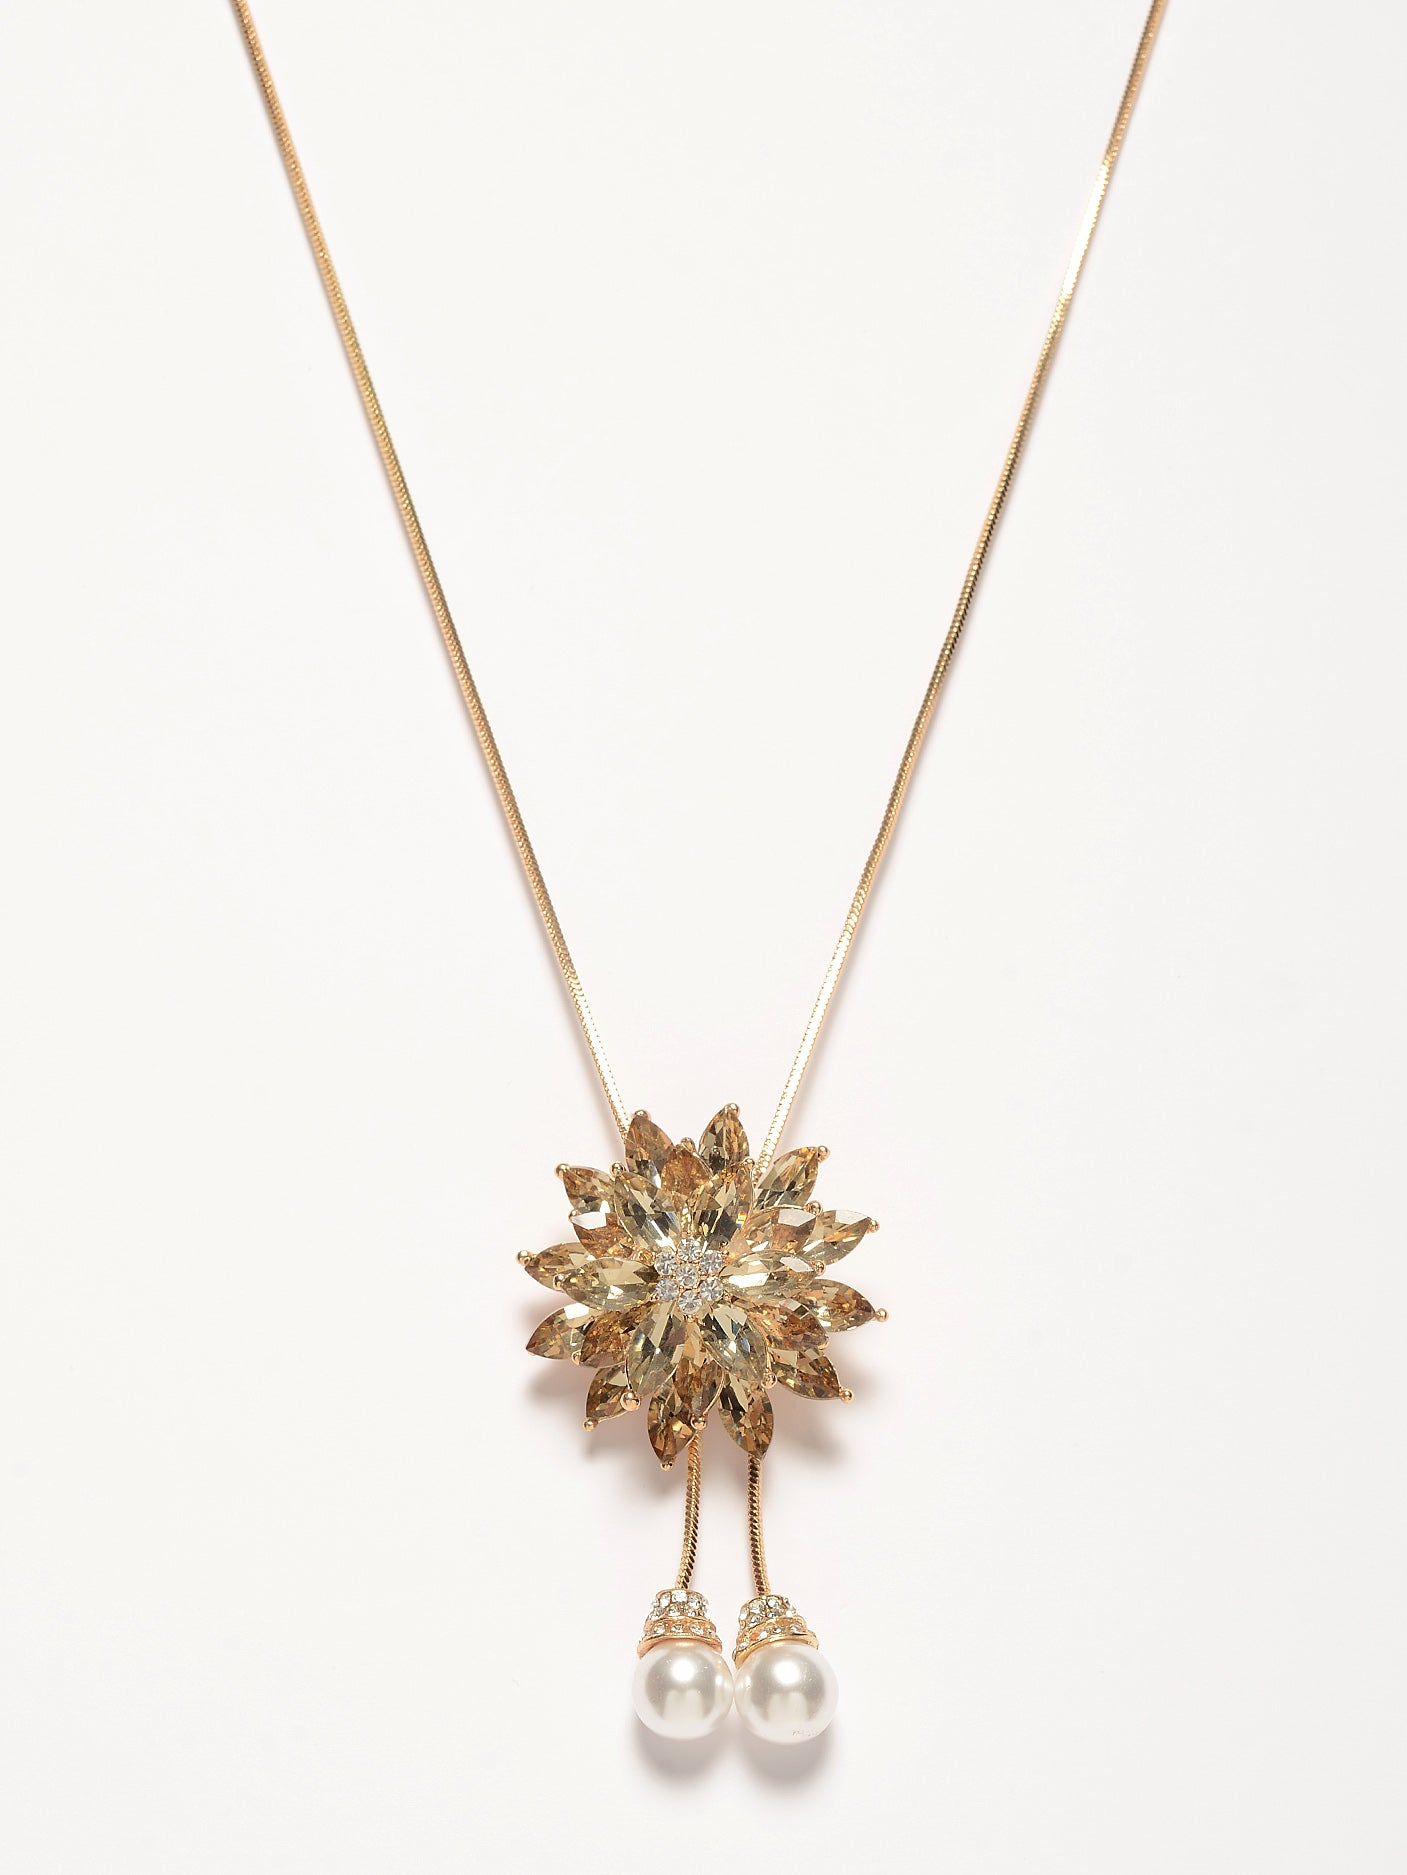 Stoned Flower Necklace